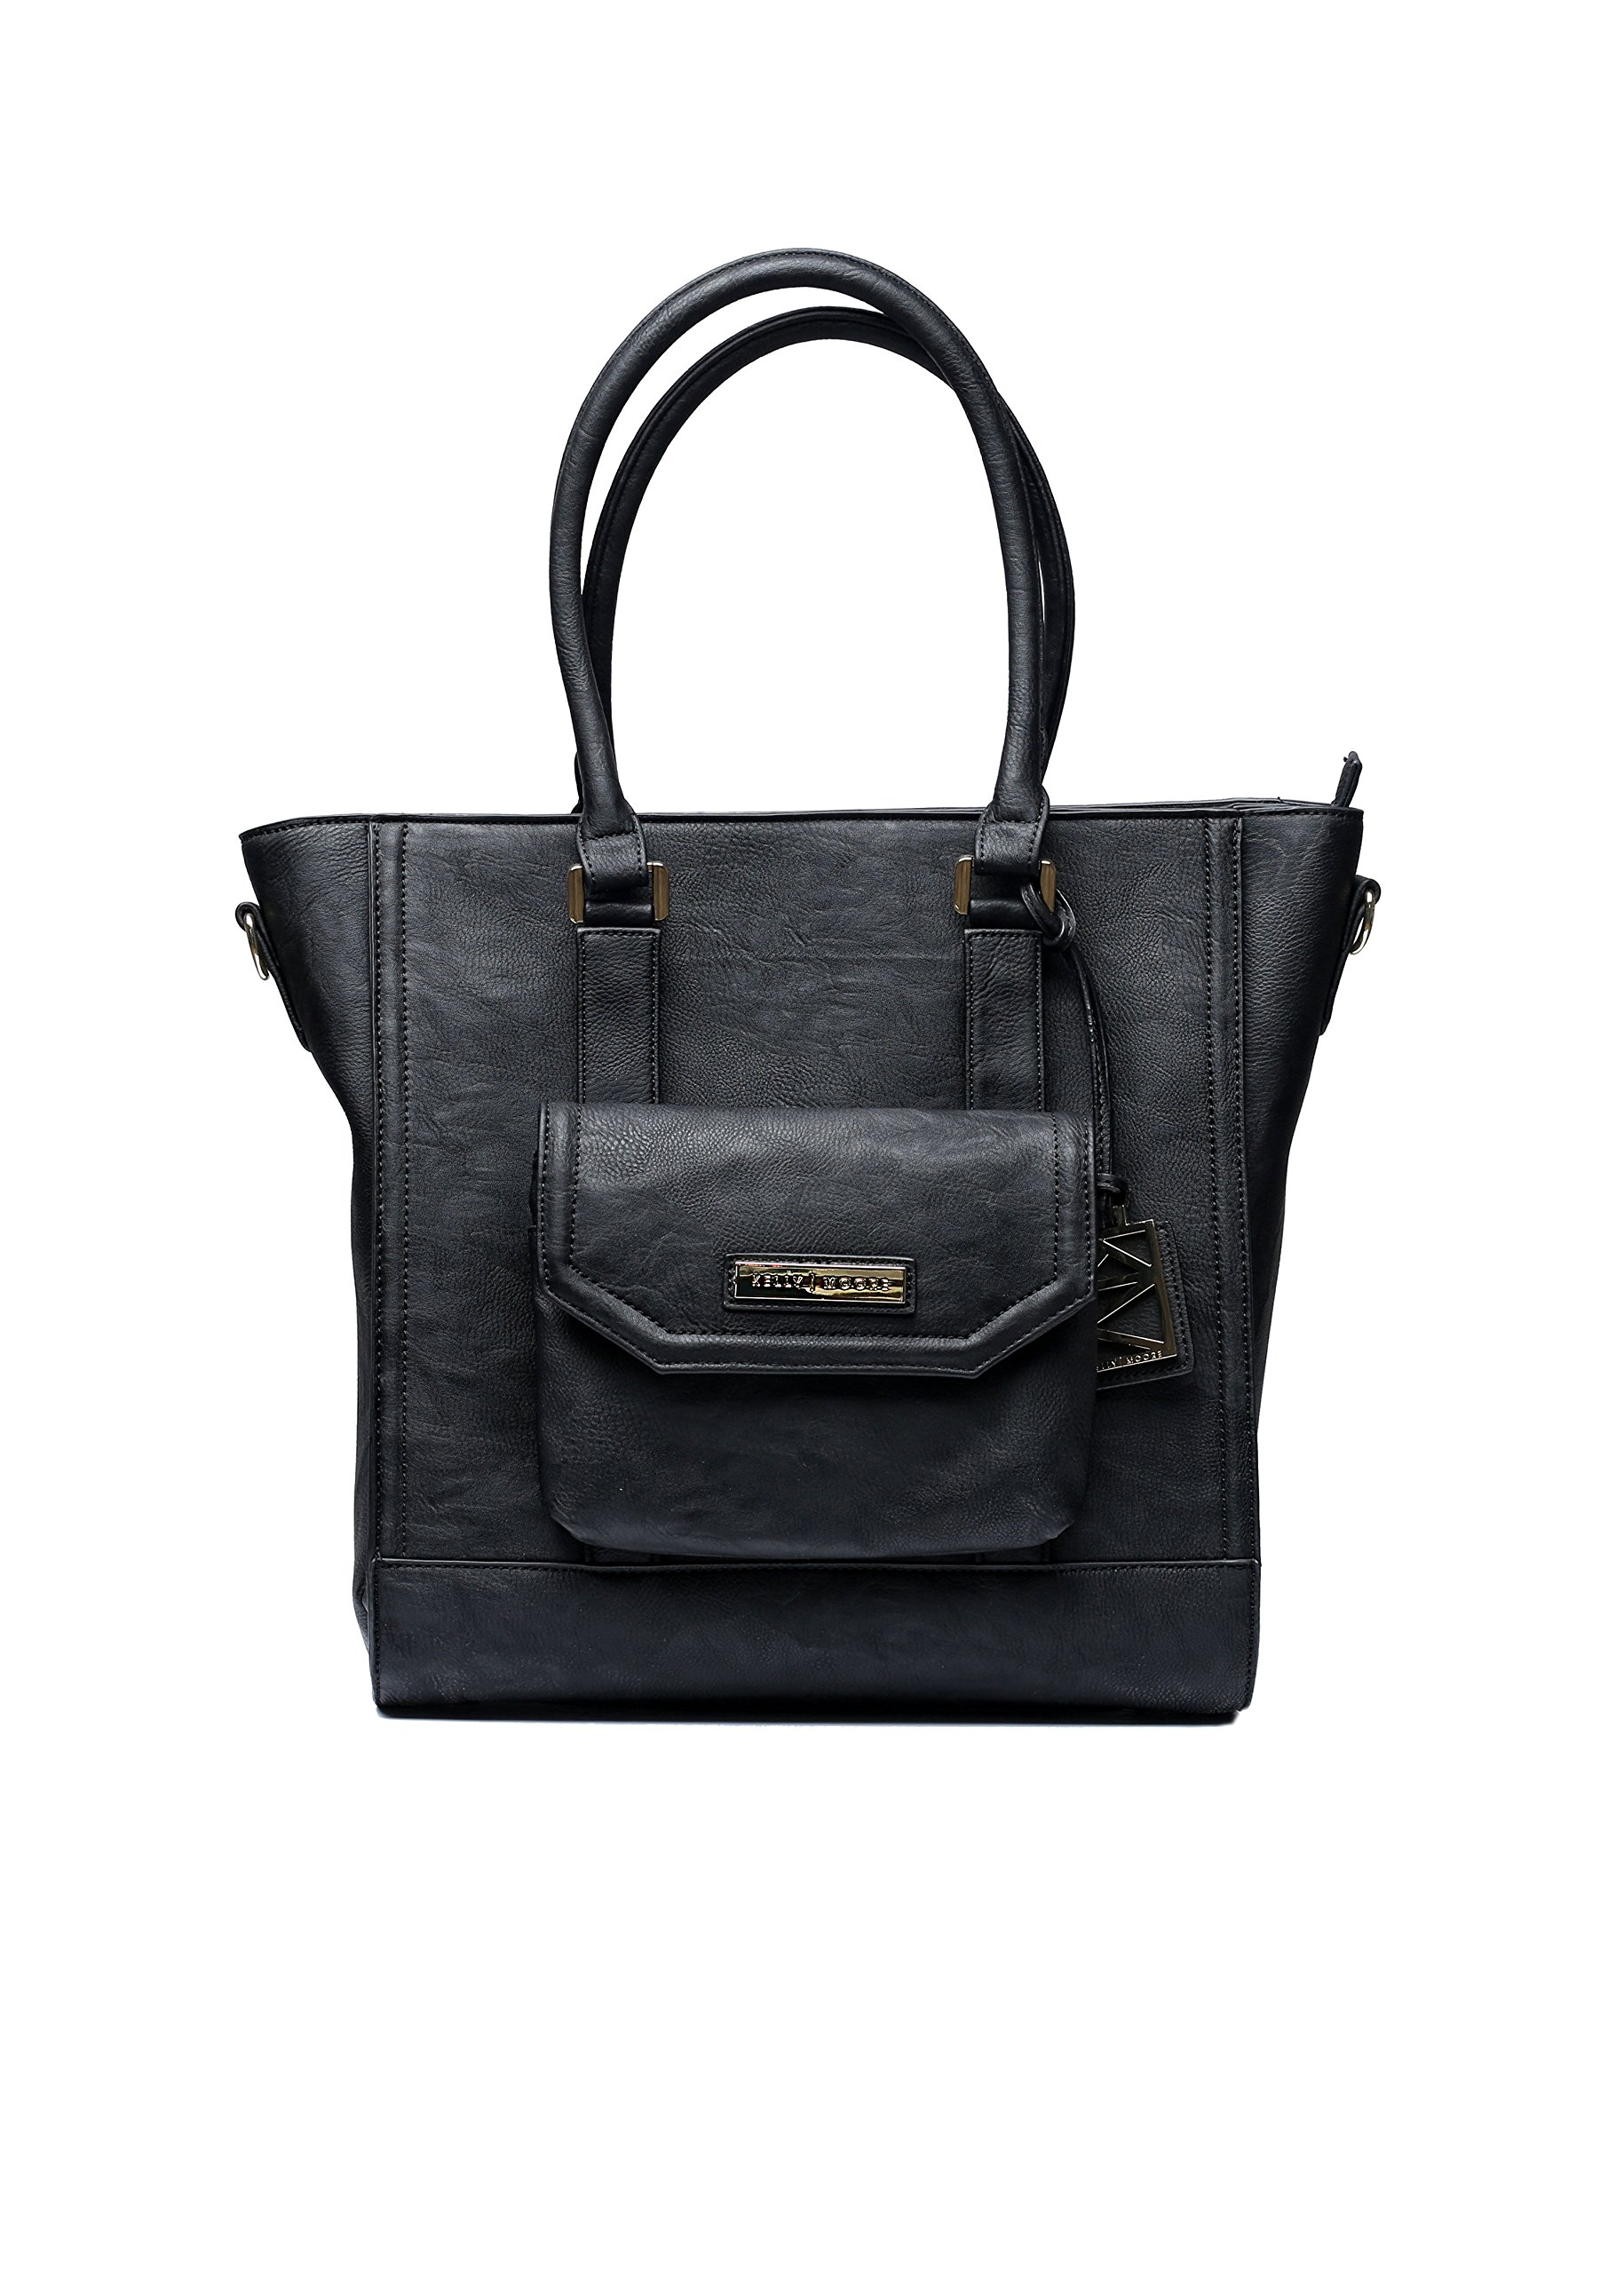 Kelly Moore Bag - Monroe Shadow